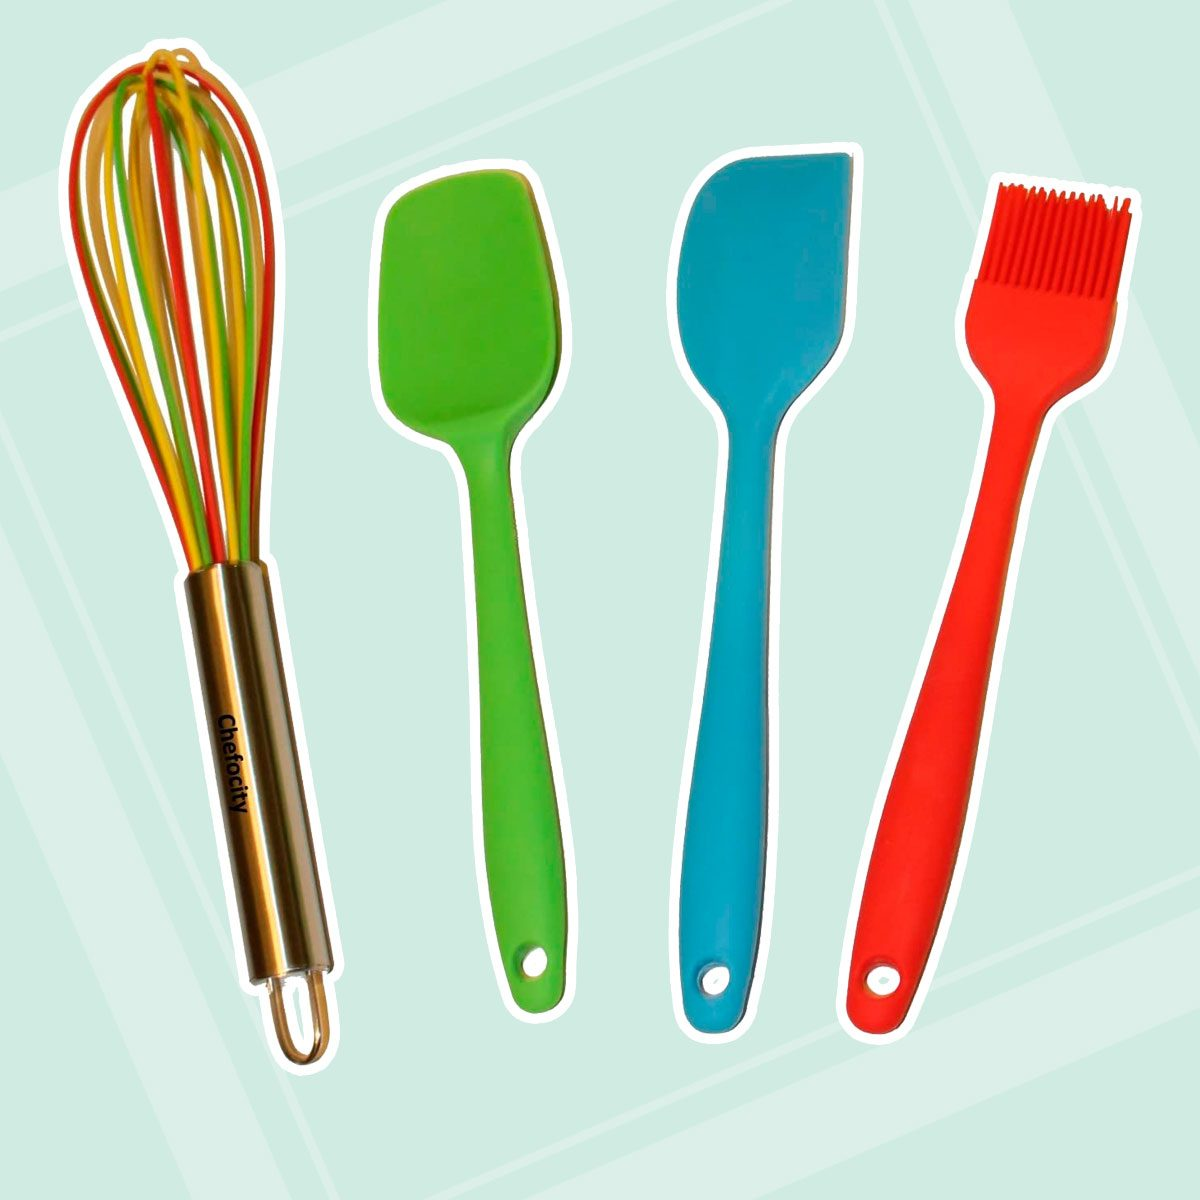 Kids Baking Set - 4 Piece Kids Cooking Utensils - Small Silicone Kitchen Tools for Kids or Adults - Whisk, Basting Brush, Scraper, Spatula.